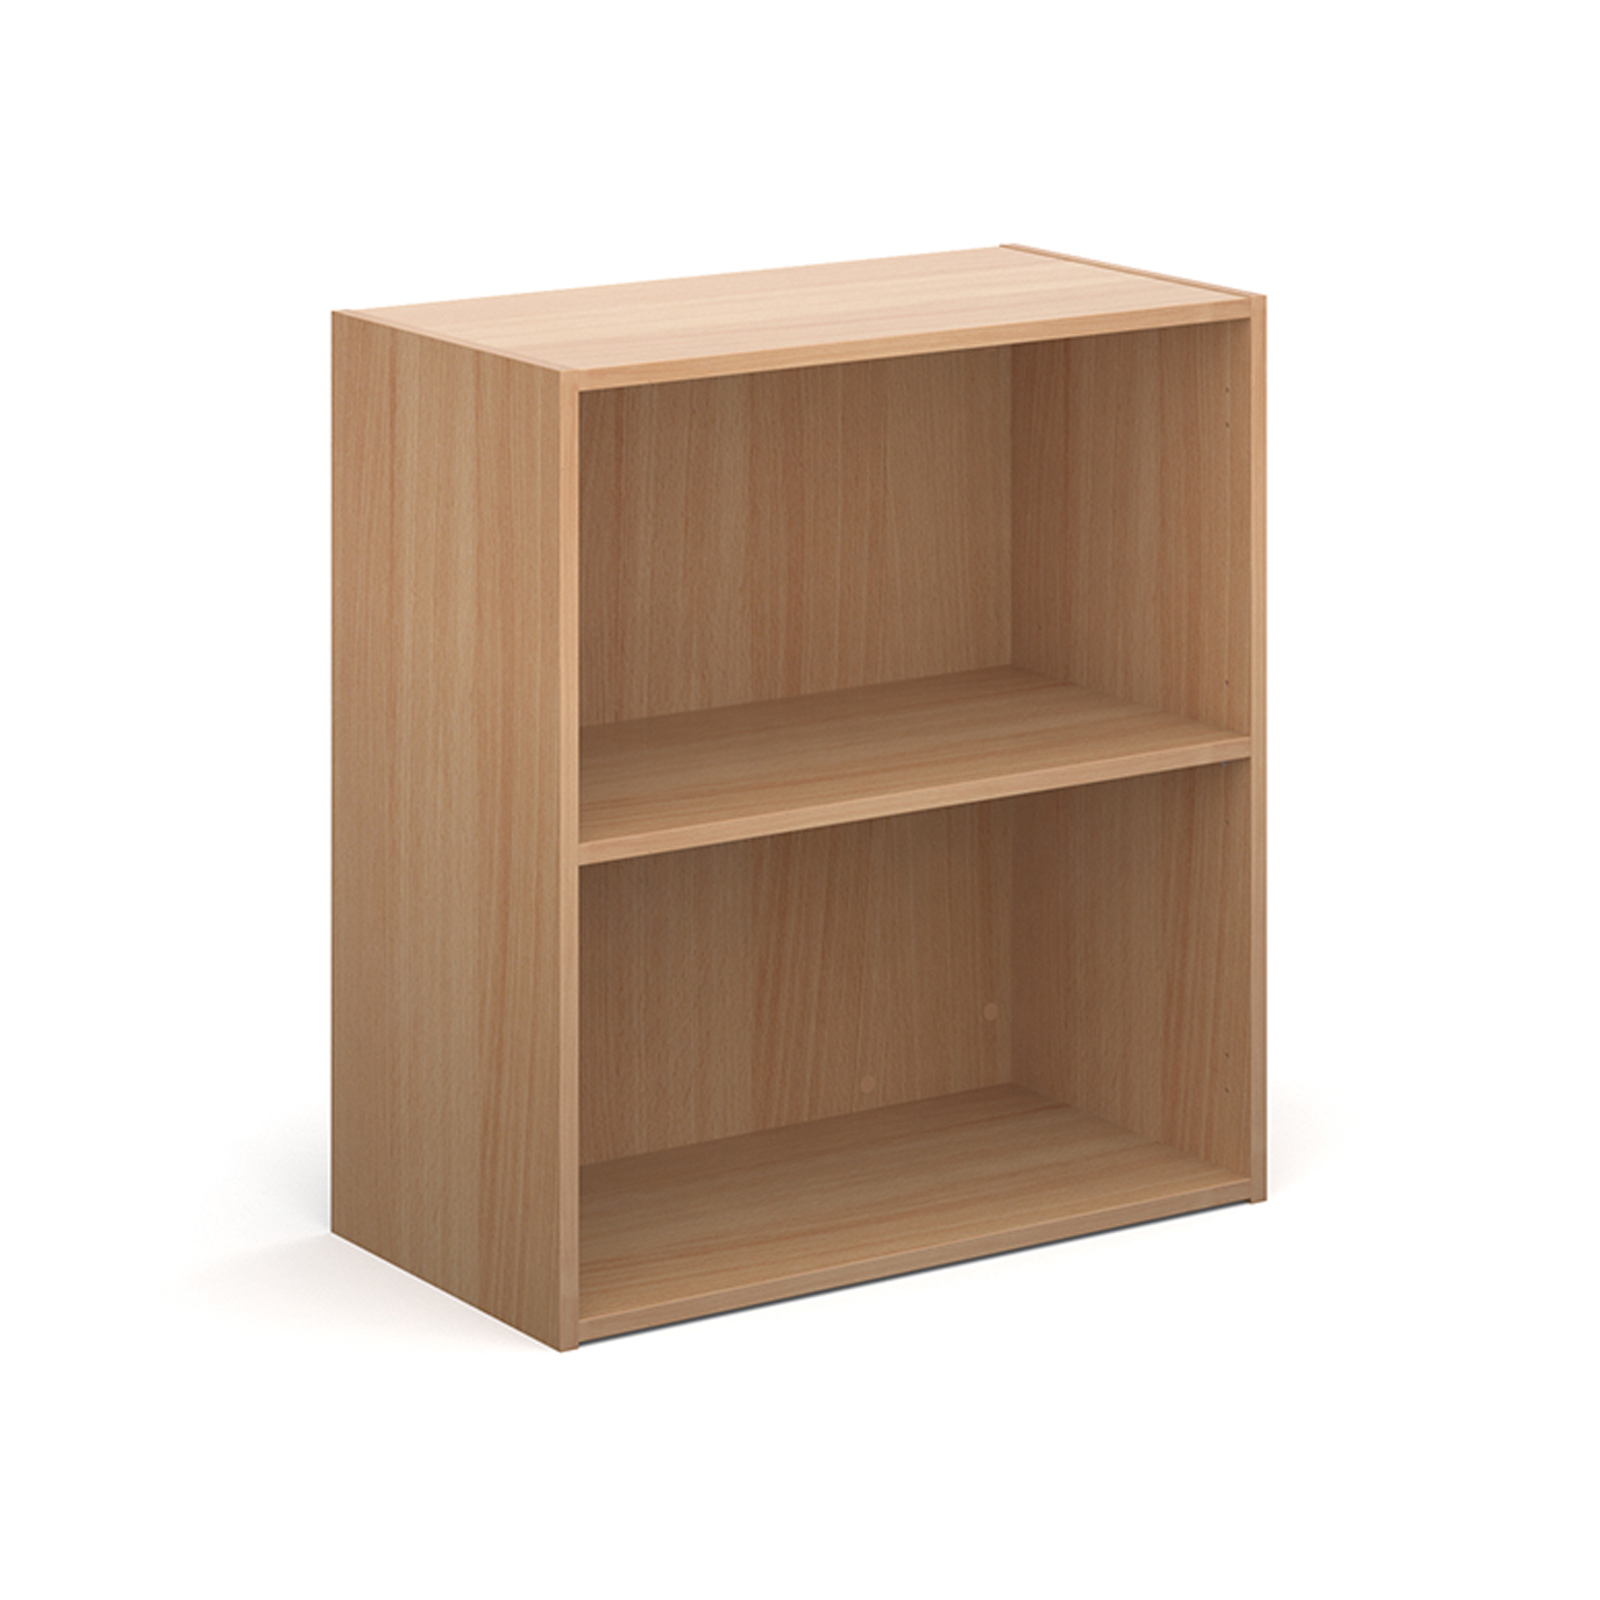 Up To 1200mm High Contract bookcase 830mm high with 1 shelf - beech